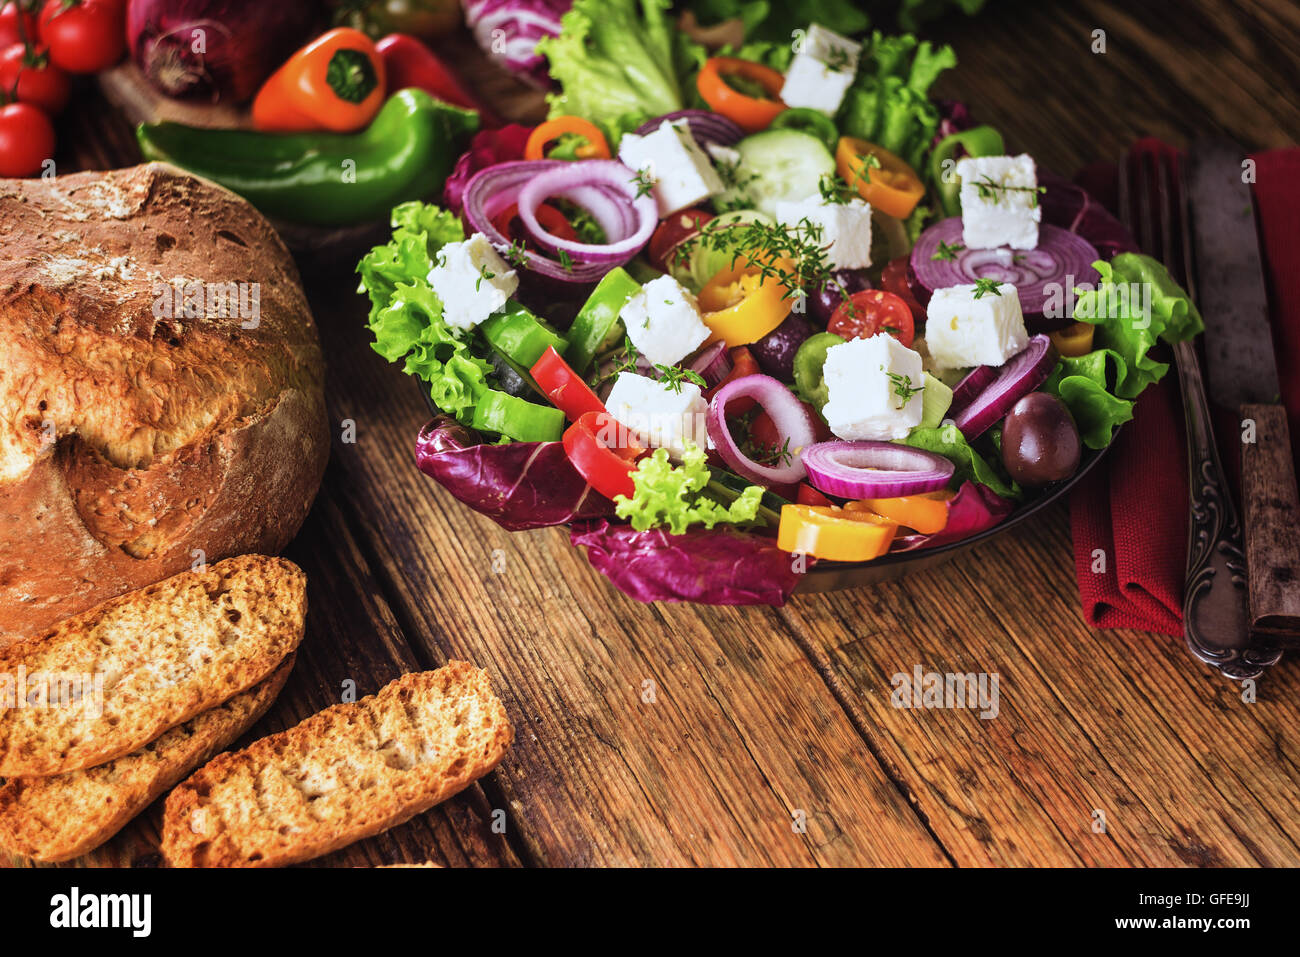 Crisp spring salad with feta cheese, full of vitamins and colors. Greec Salad on vintage table Stock Photo